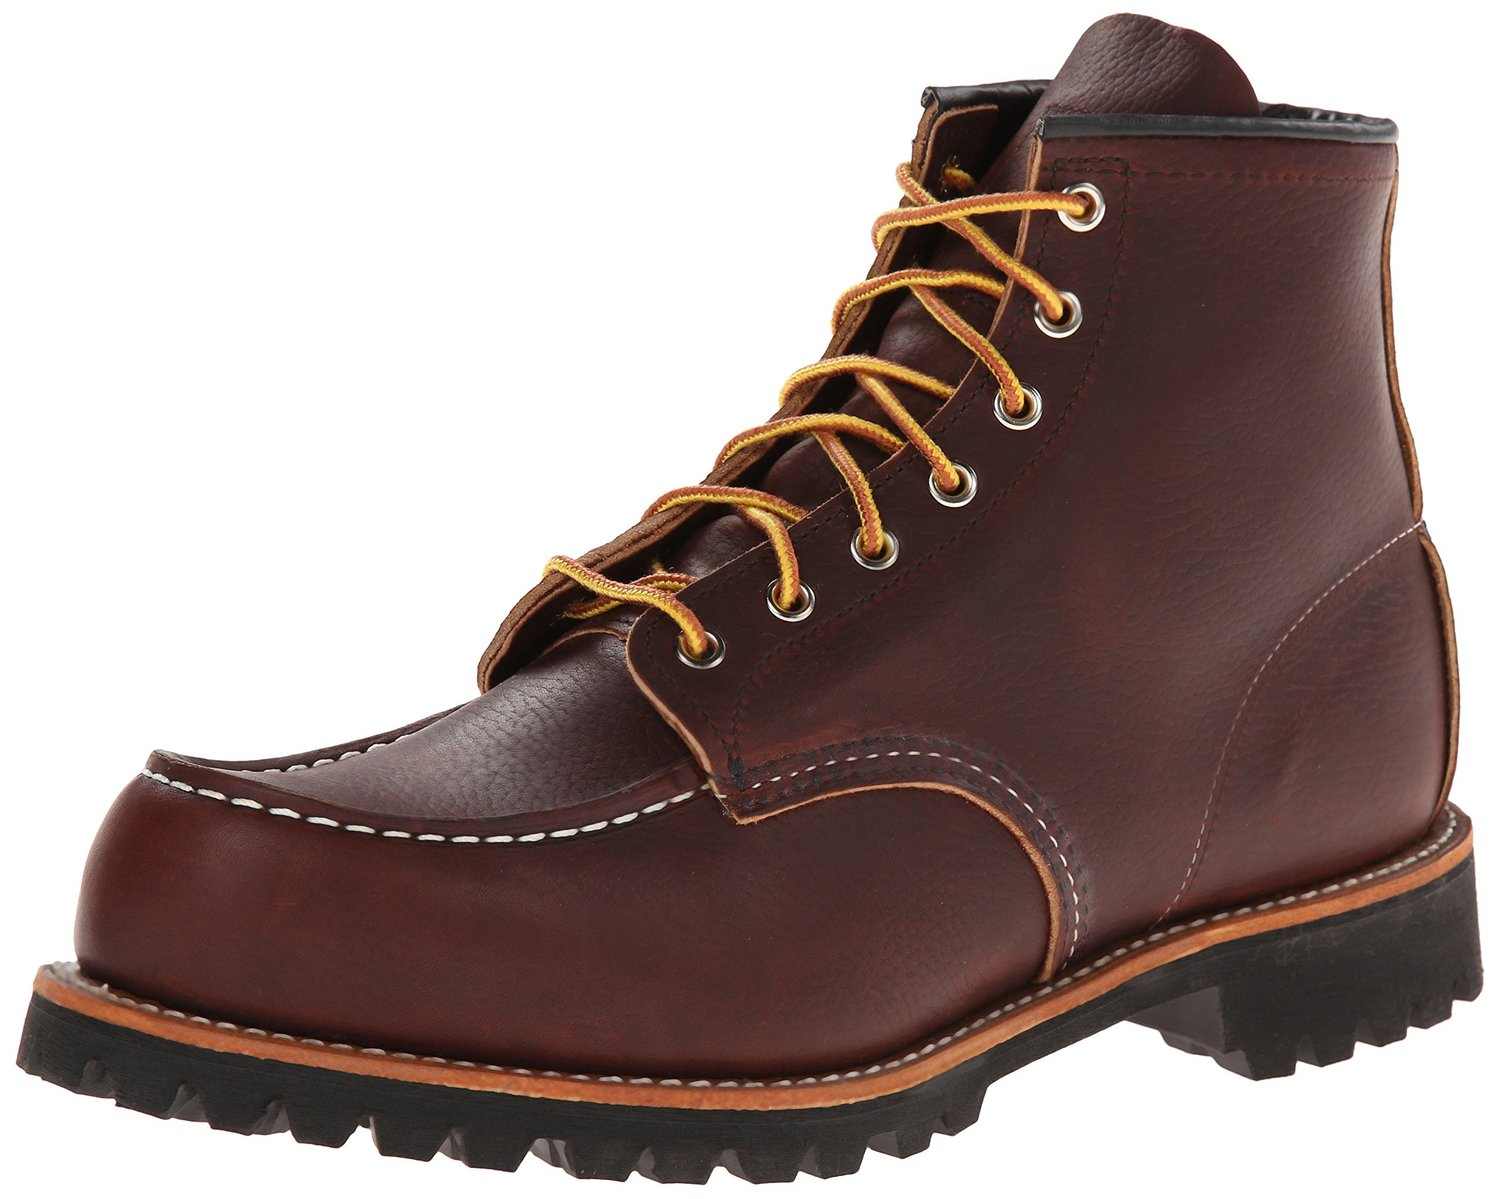 Red Wing Boots Online Sales - Boot Yc